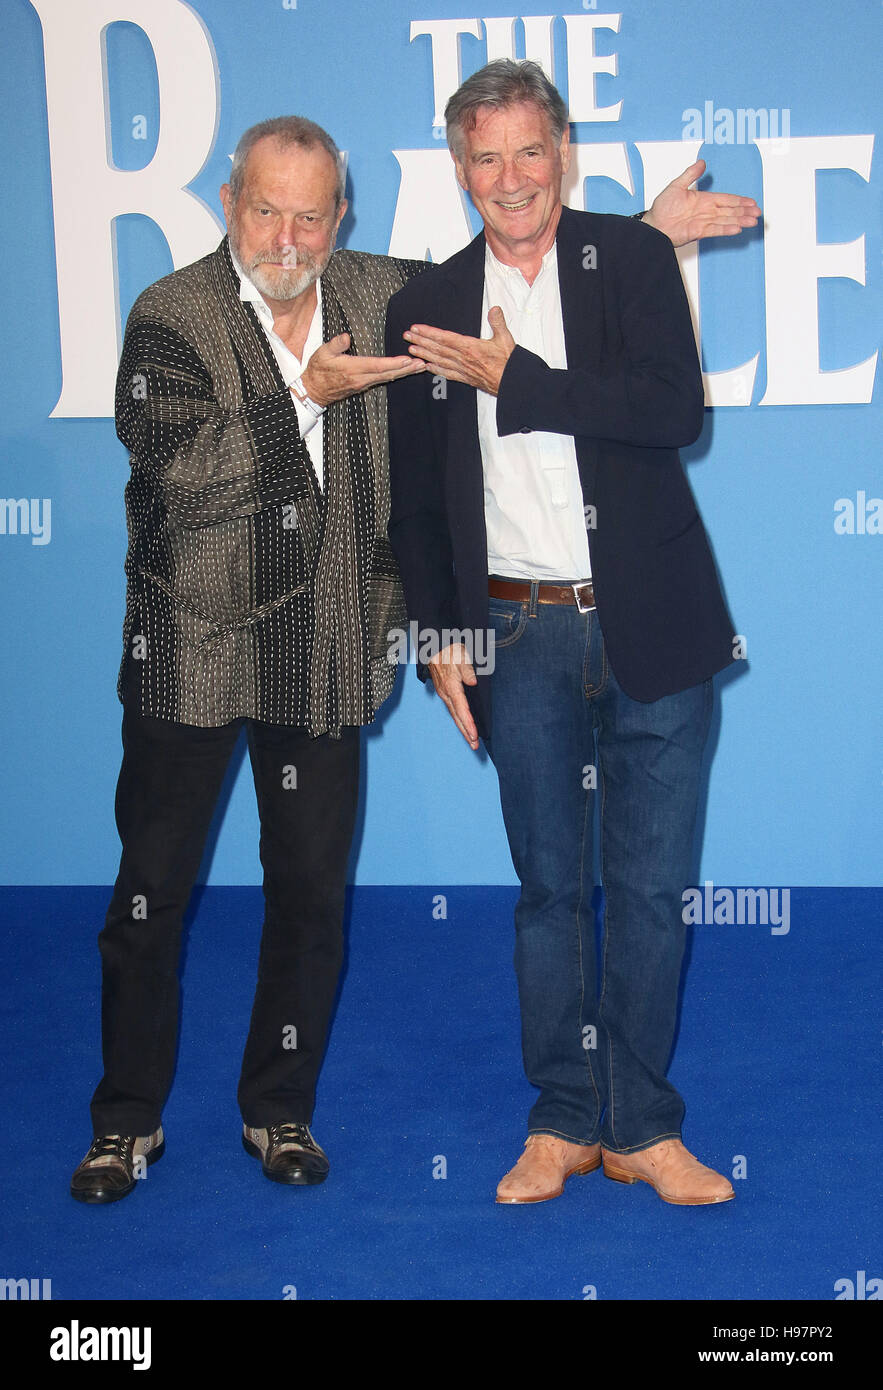 September 15, 2016 - Terry Gilliam and Michael Palin attending 'Eight Days a Week The Touring Years' World - Stock Image